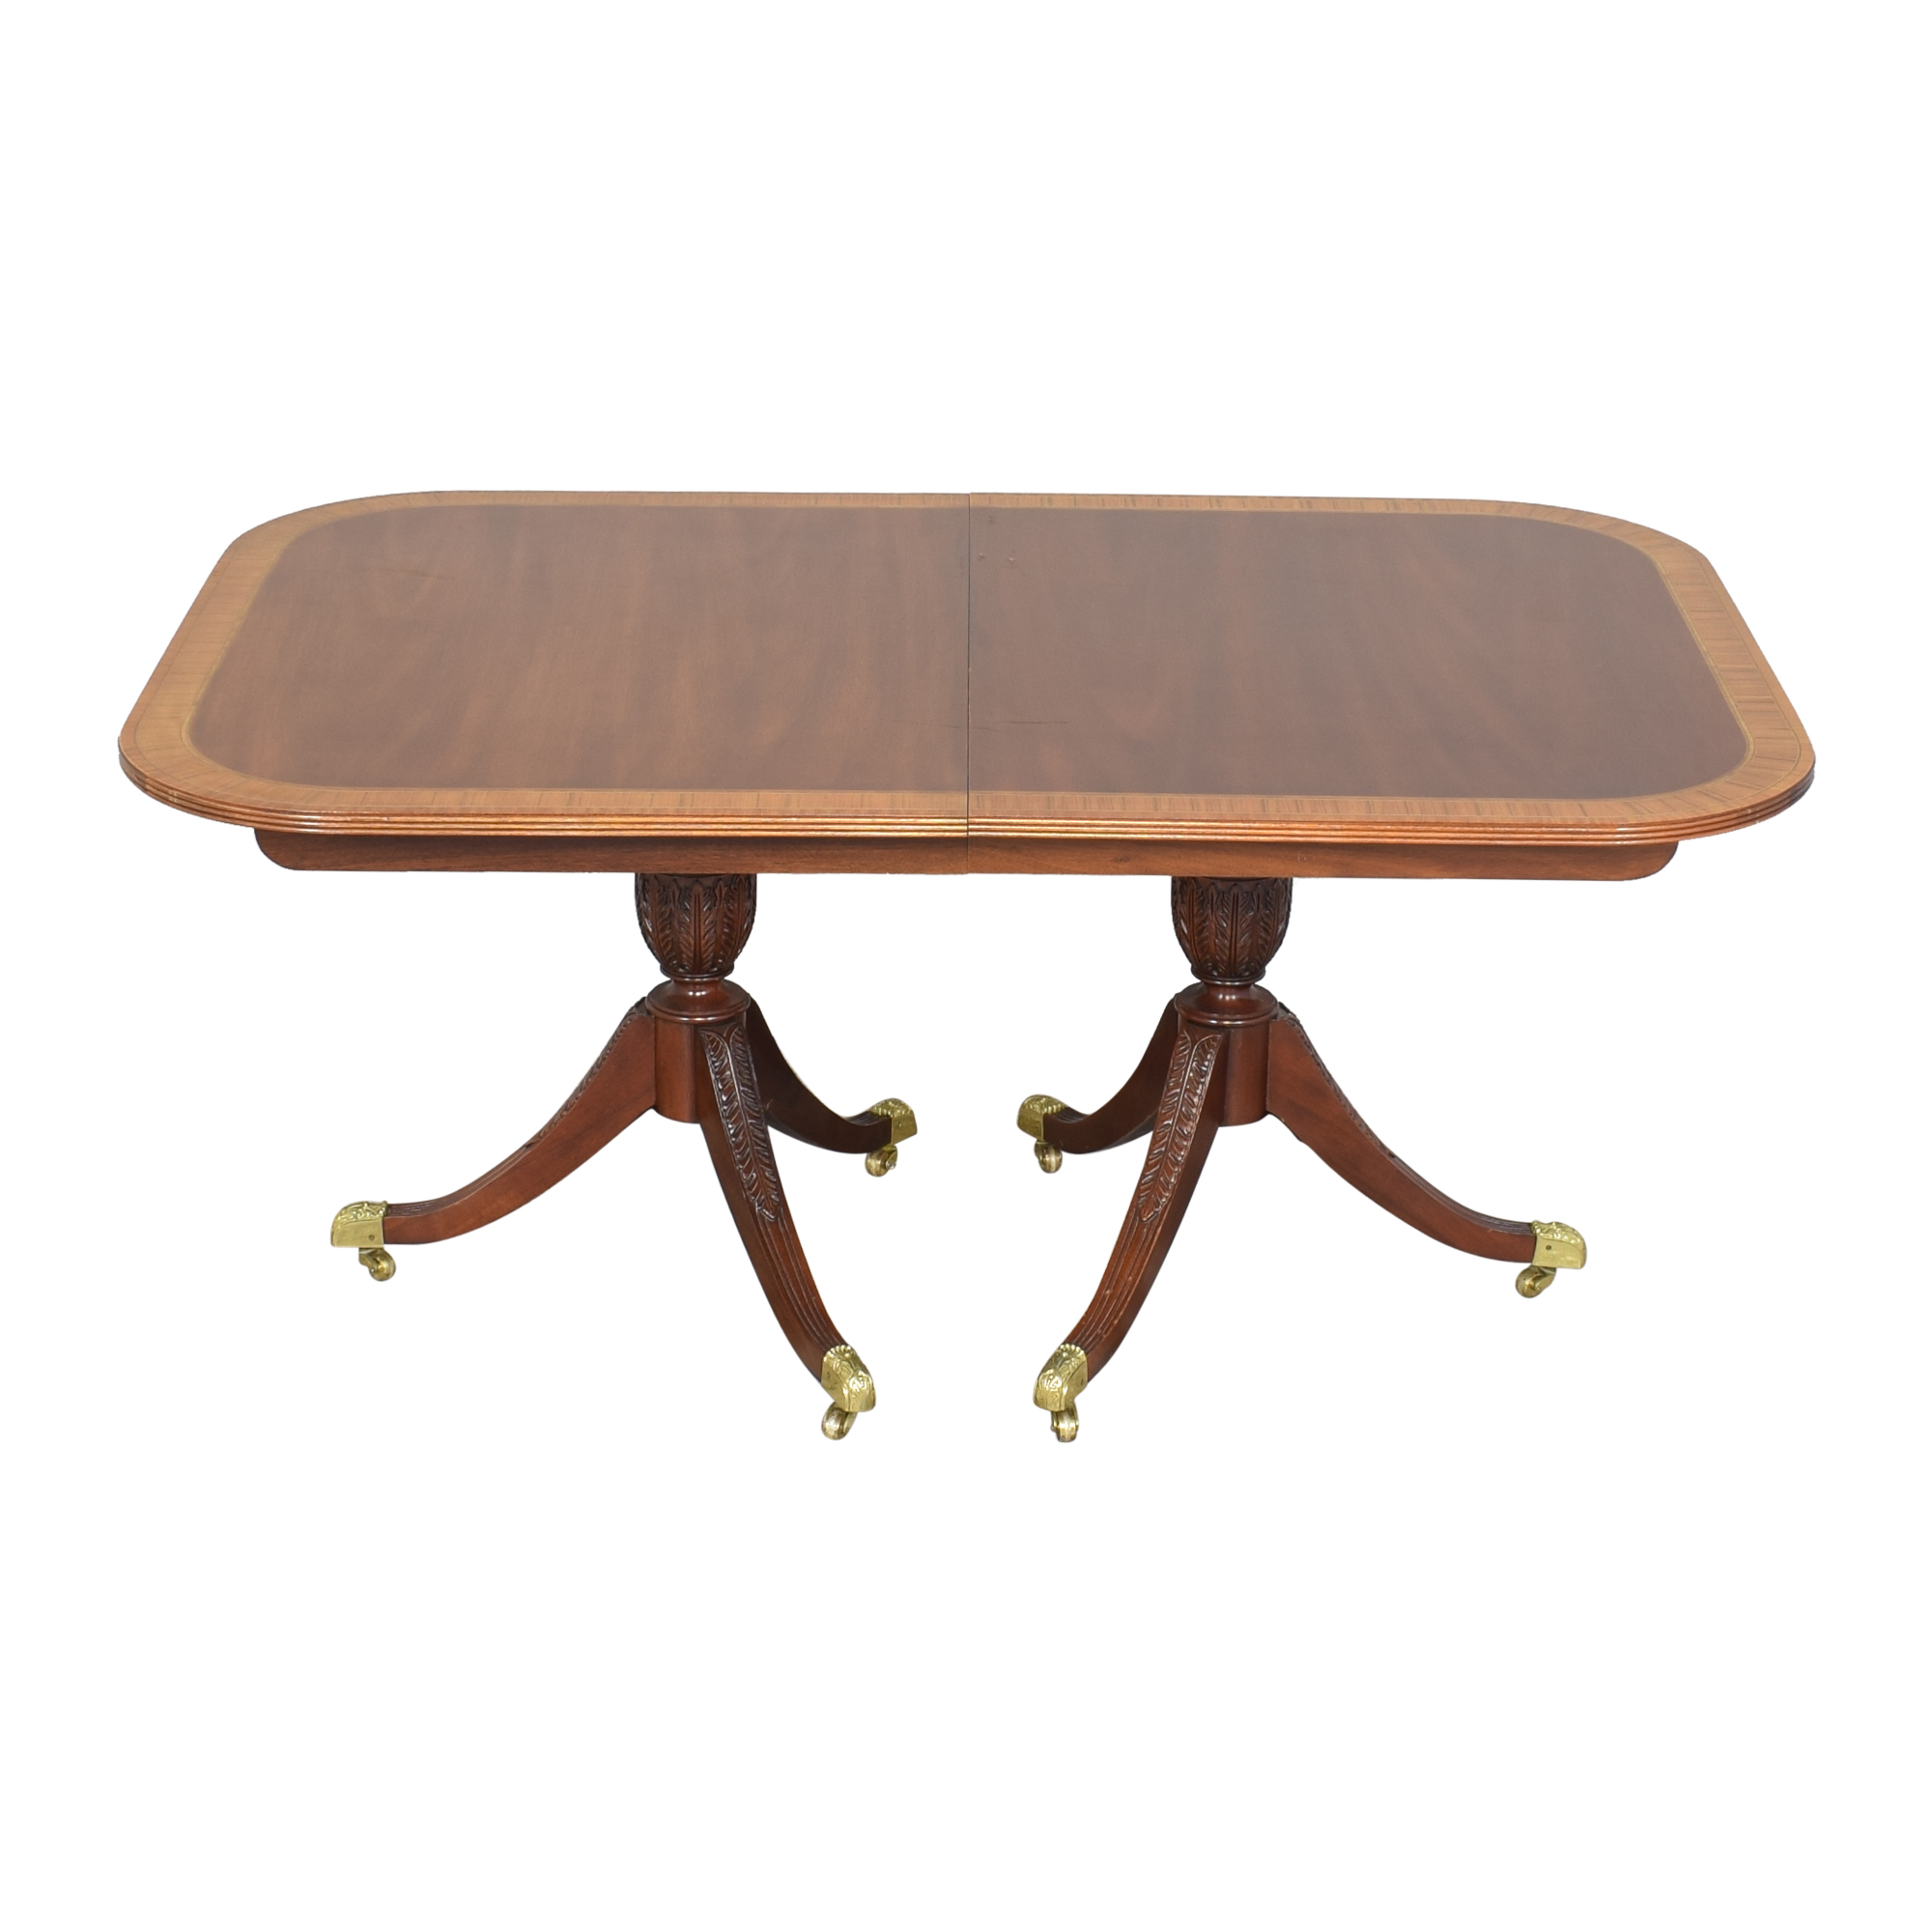 Councill Councill Craftsman Georgian Banded Extendable Dining Table coupon